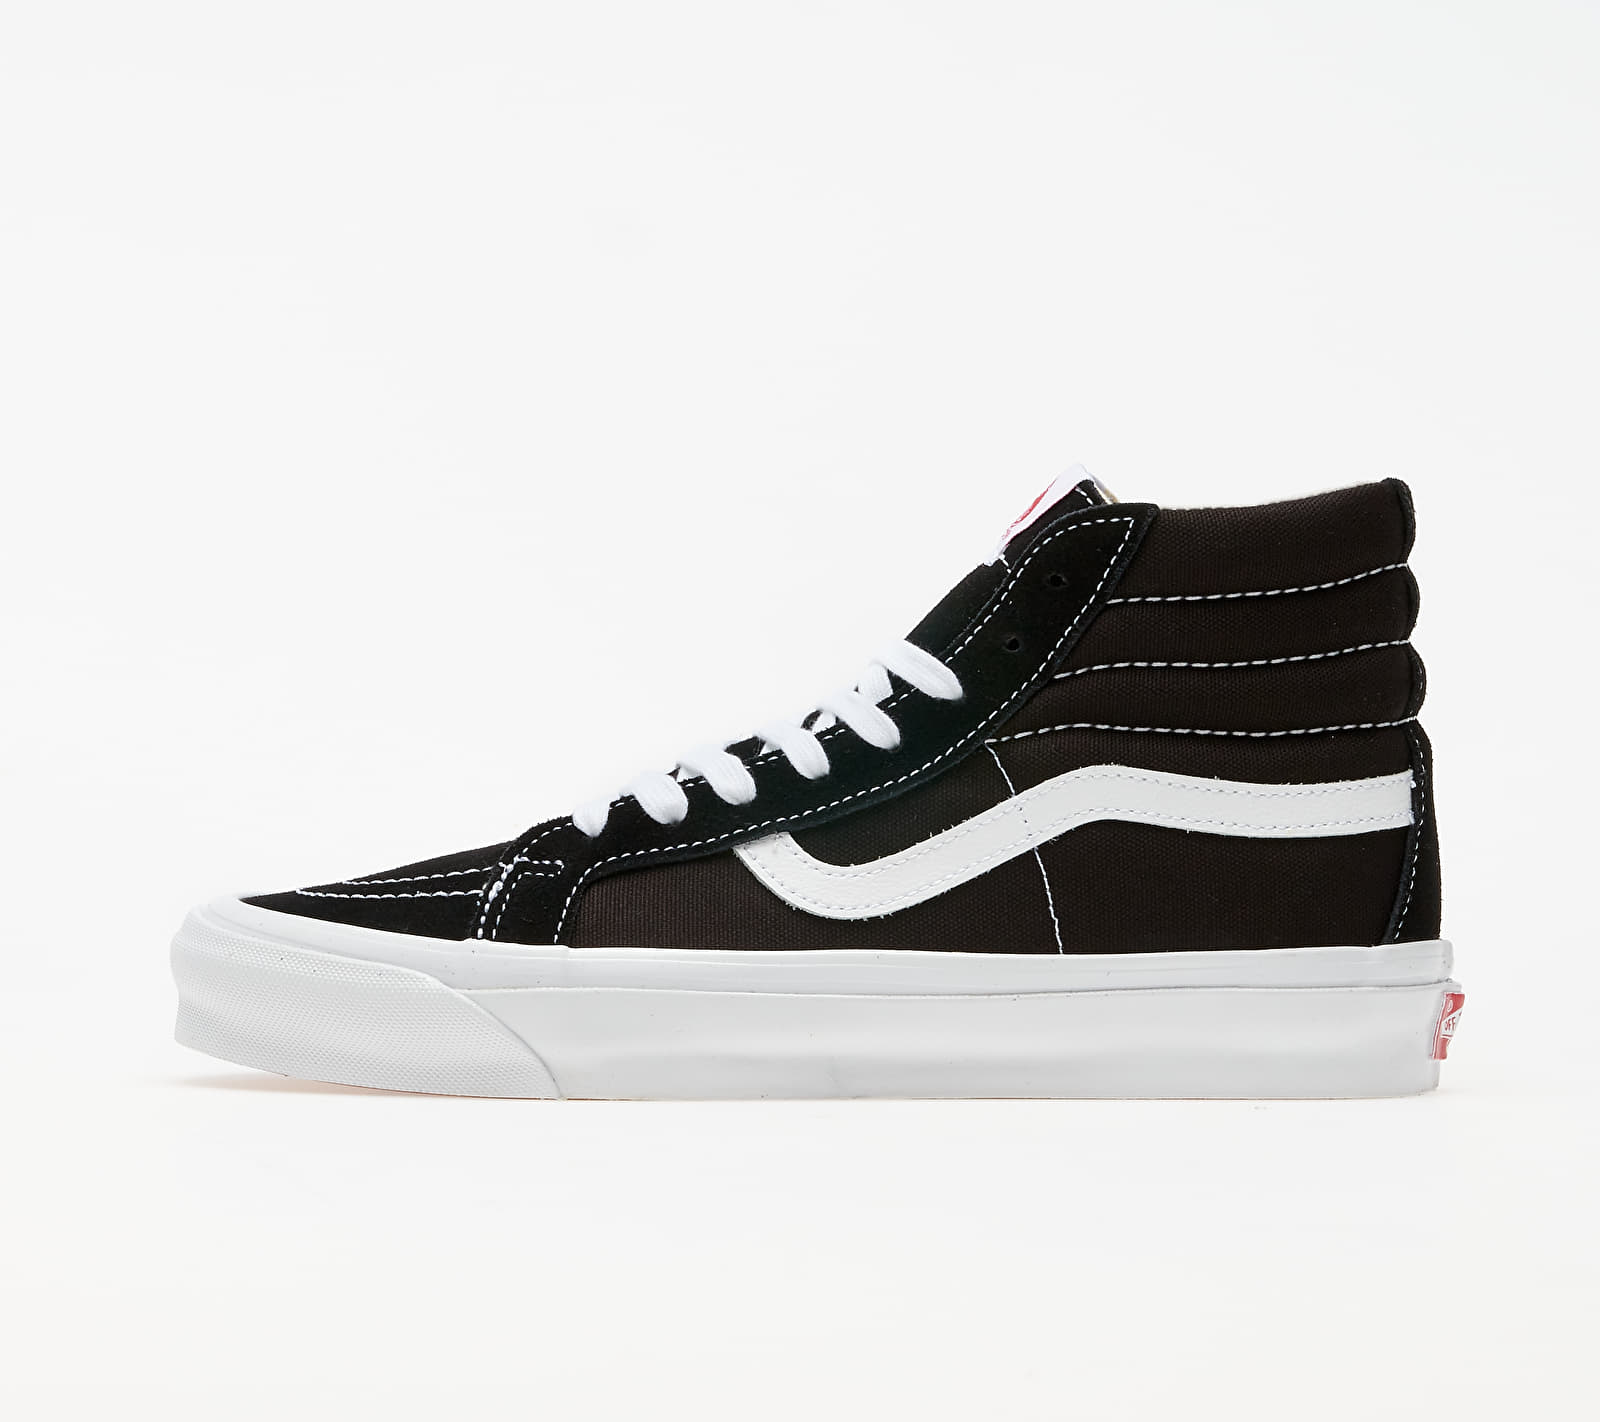 Vans Vault OG Sk8-Hi LX (Suede/ Canvas) Black/ True White EUR 40